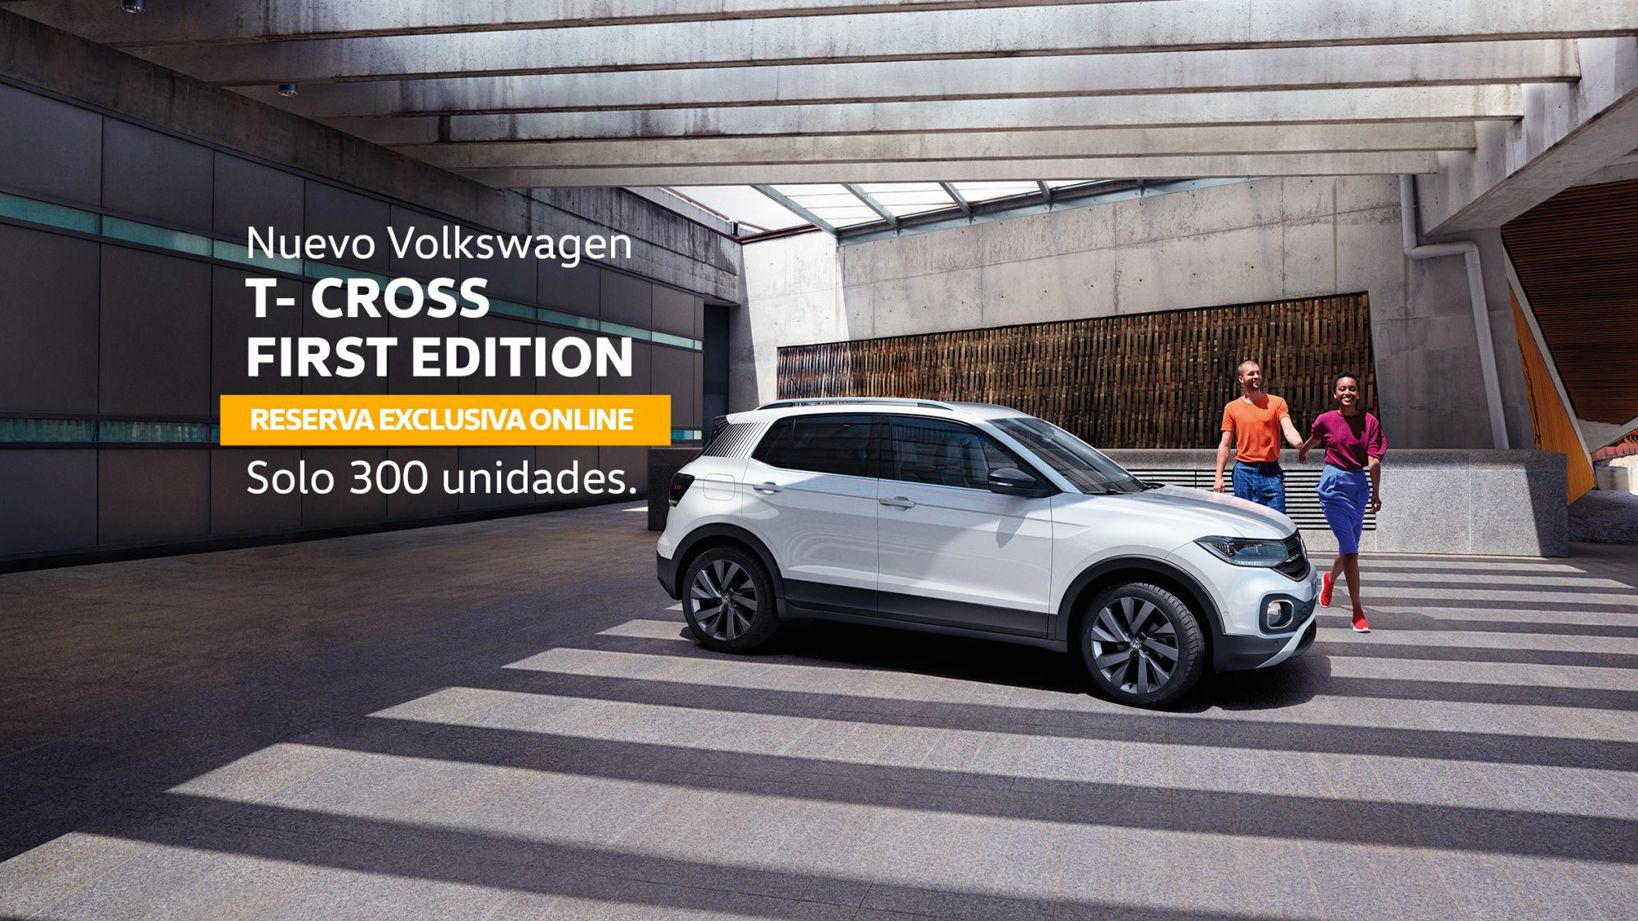 NUEVO T-CROSS FIRST EDITION.